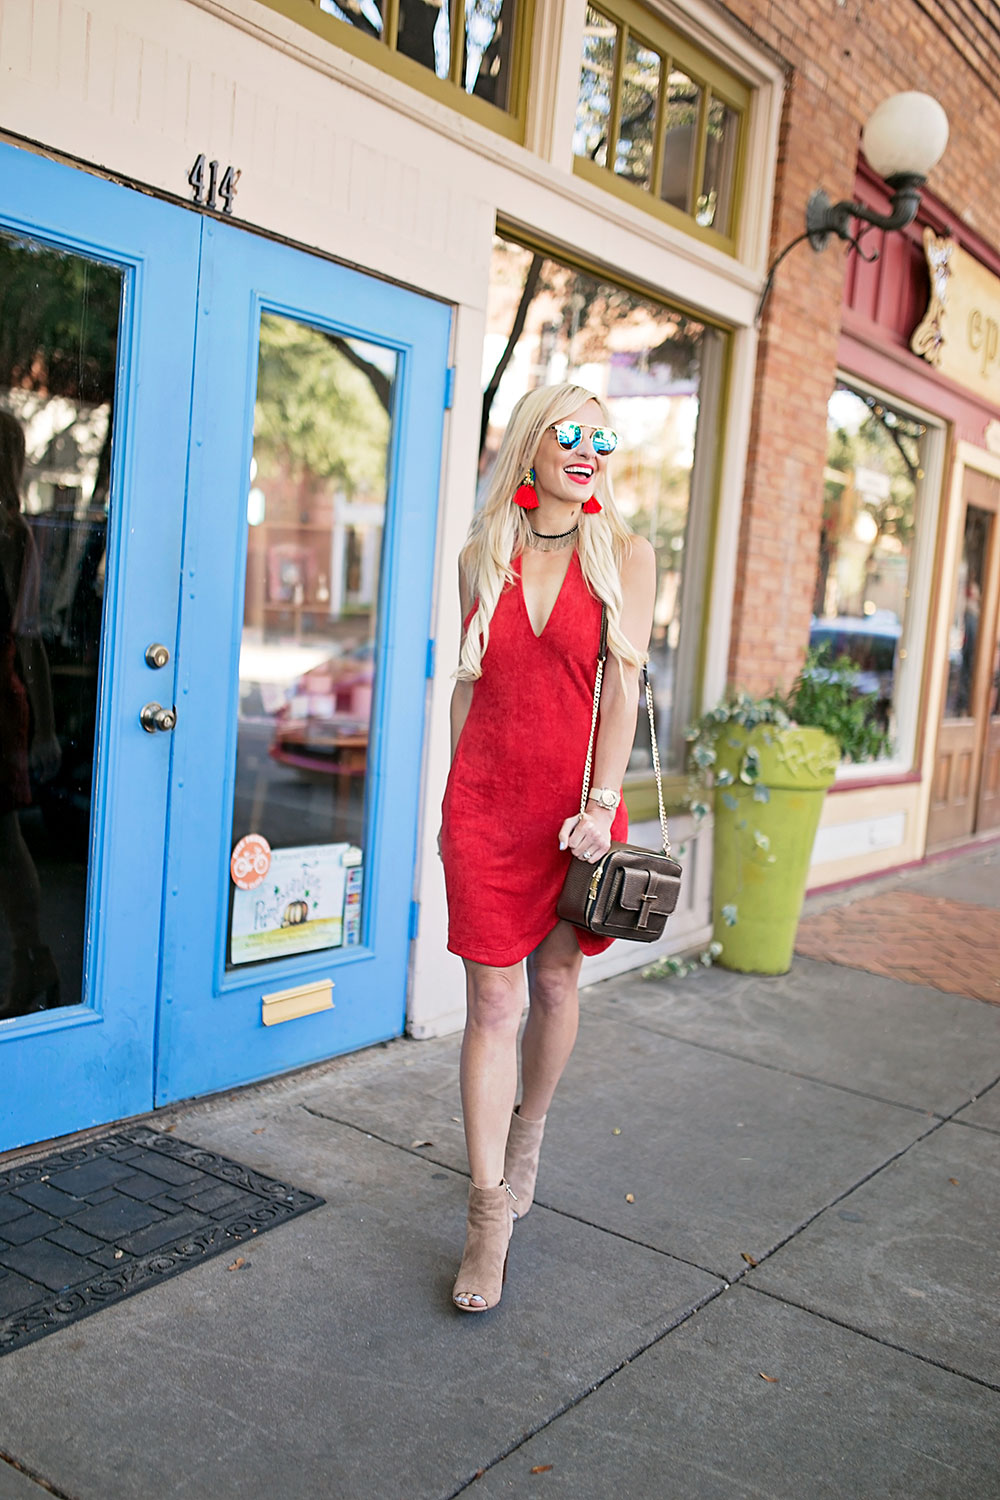 vandi-fair-blog-lauren-vandiver-dallas-texas-southern-fashion-blogger-the-styled-collection-red-halter-dress-suede-ramona-bronze-crossbody-bag